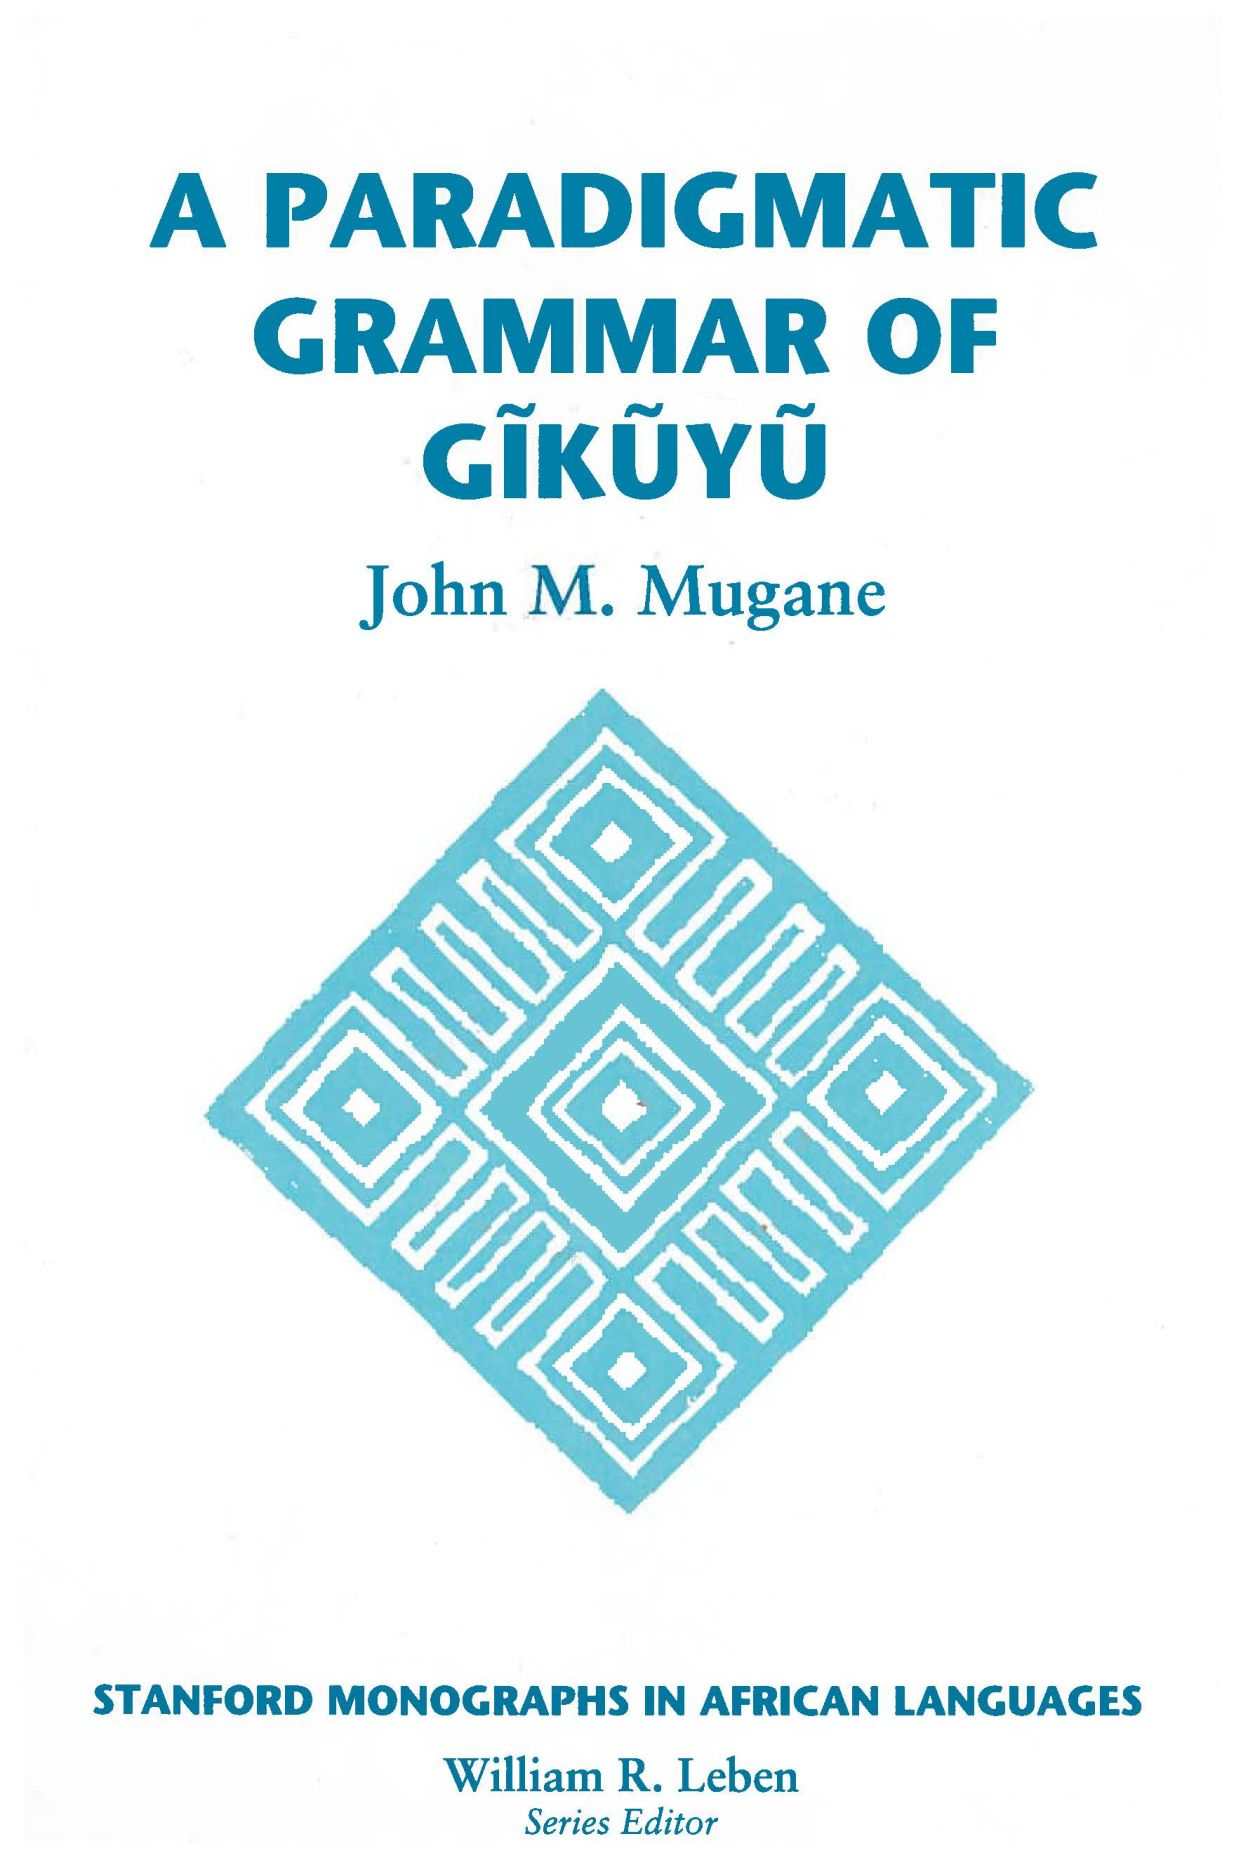 Paradigmatic Grammar of Gikuyu